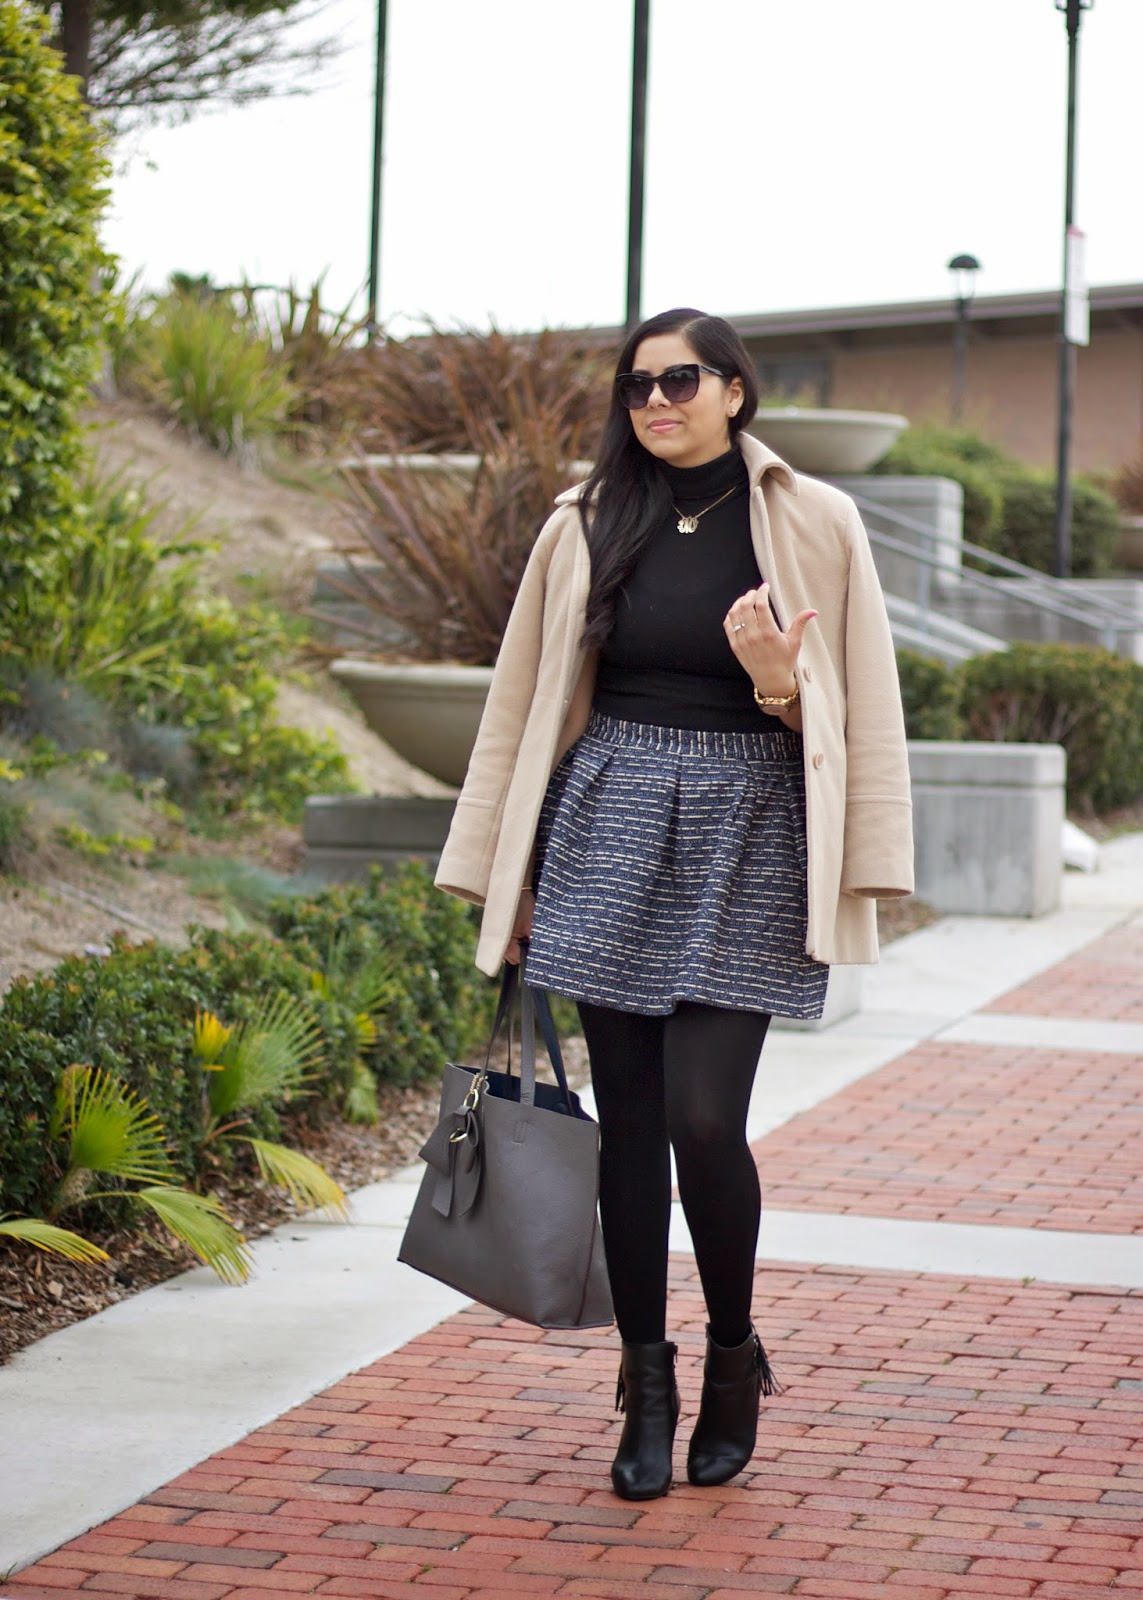 girly chic outfit, outfit with tights, opaque tights, winter chic, san diego street style, playful look, gray purse